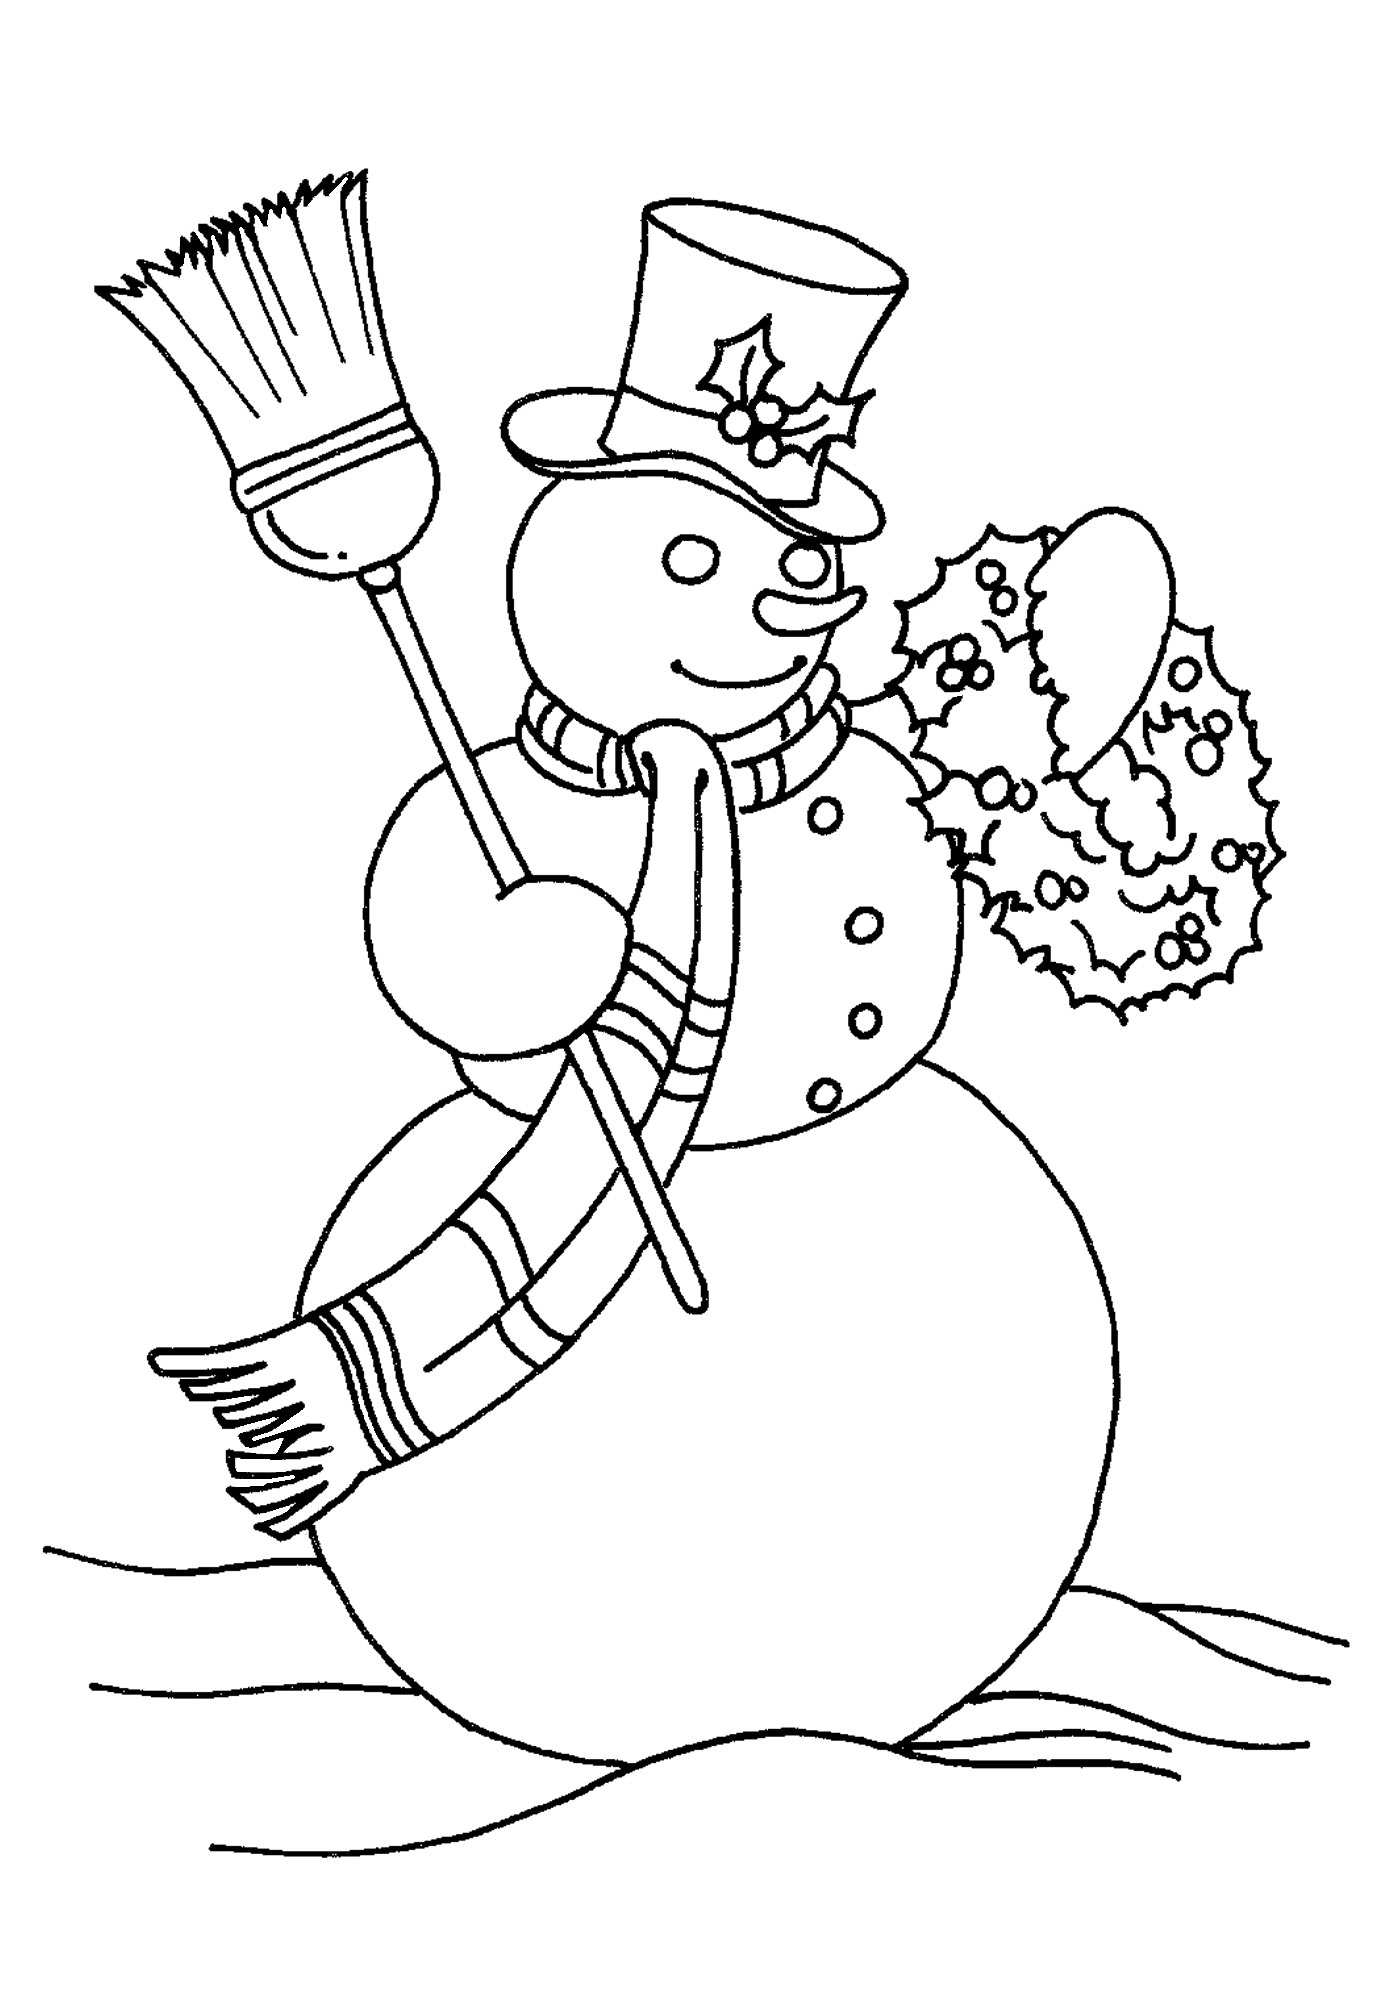 Snowman coloring pages 360coloringpages for Christmas snowman coloring pages